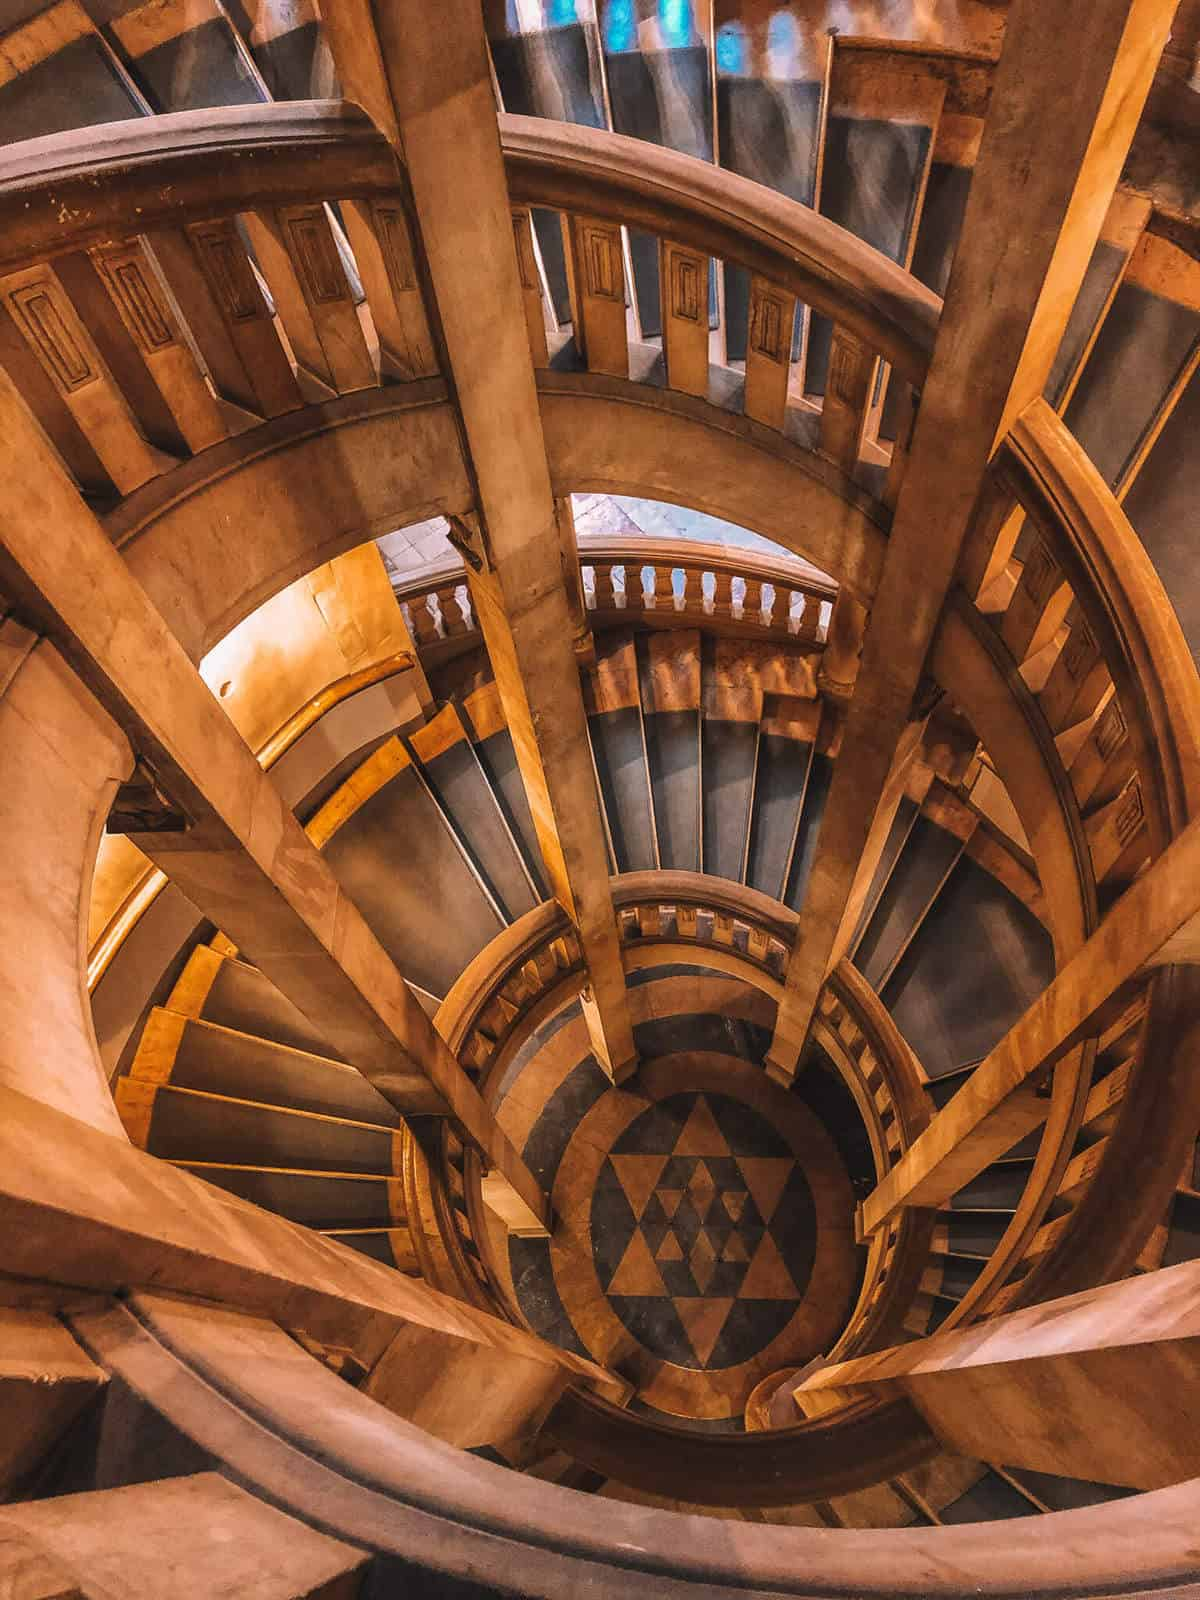 A spiral stair case leading down to a floor with a star tiled into the floor